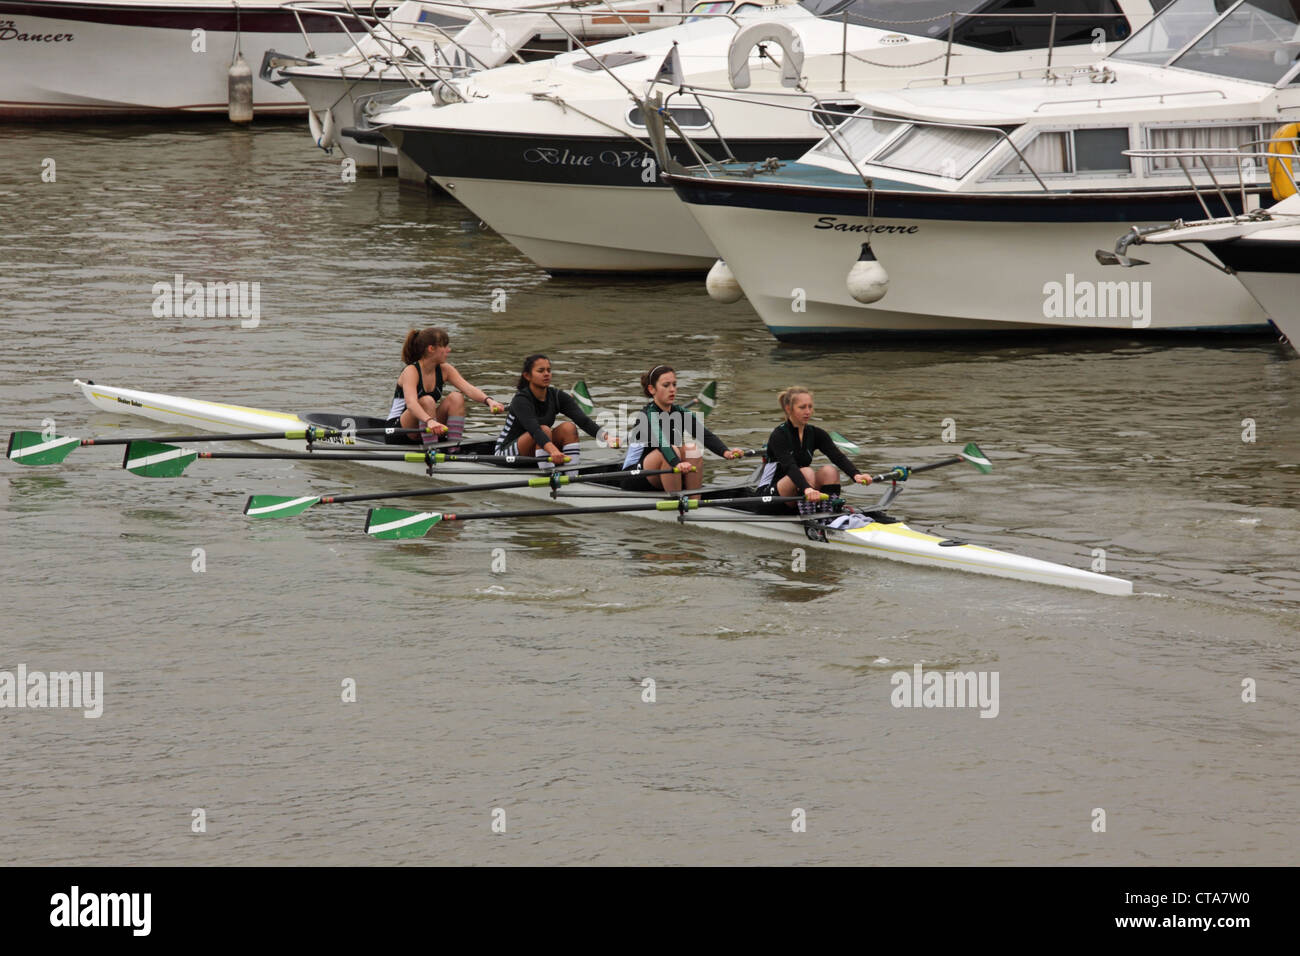 A young female coxless crew competing in a river race in Bristol UK - Stock Image